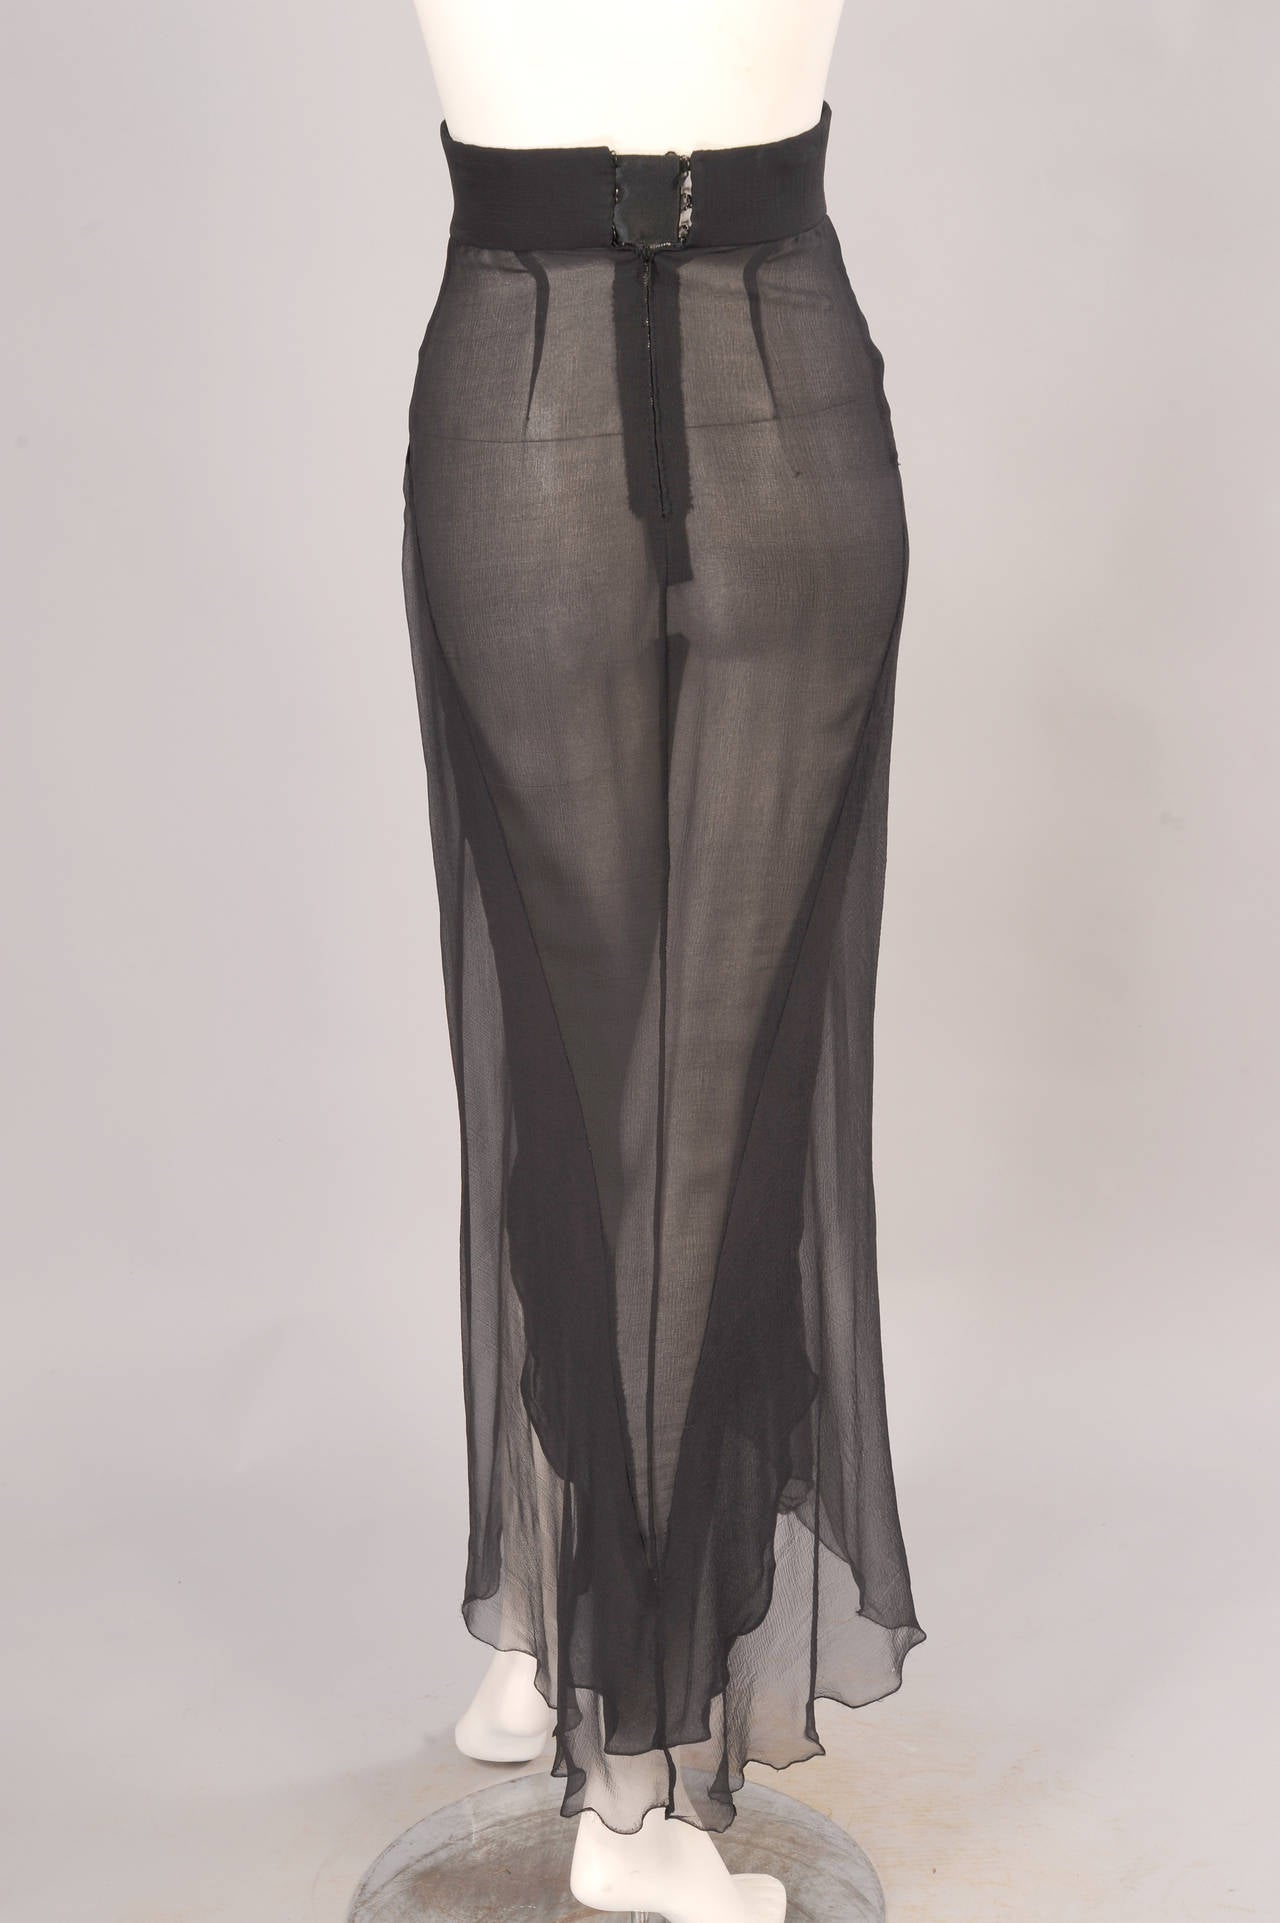 Yves Saint Laurent Haute Couture Sheer Silk Chiffon Skirt 3